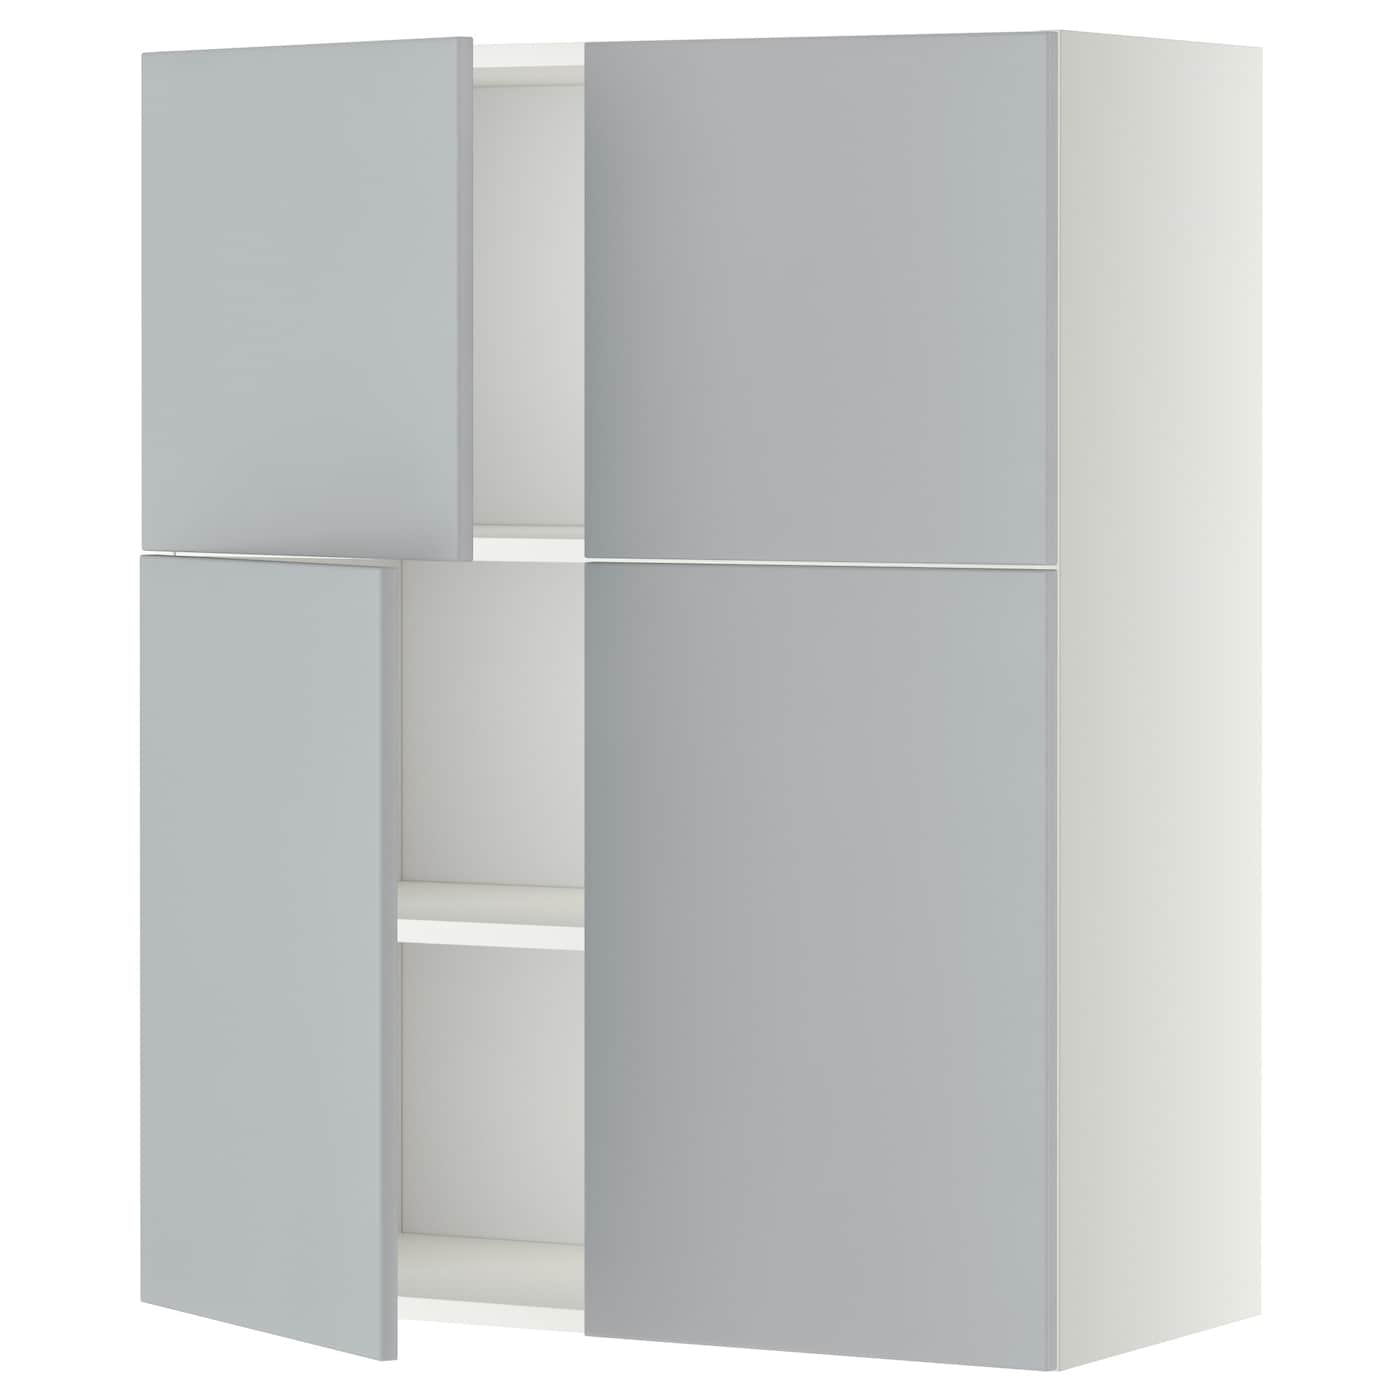 Metod wall cabinet with shelves 4 doors white veddinge for Kitchen cabinets ikea